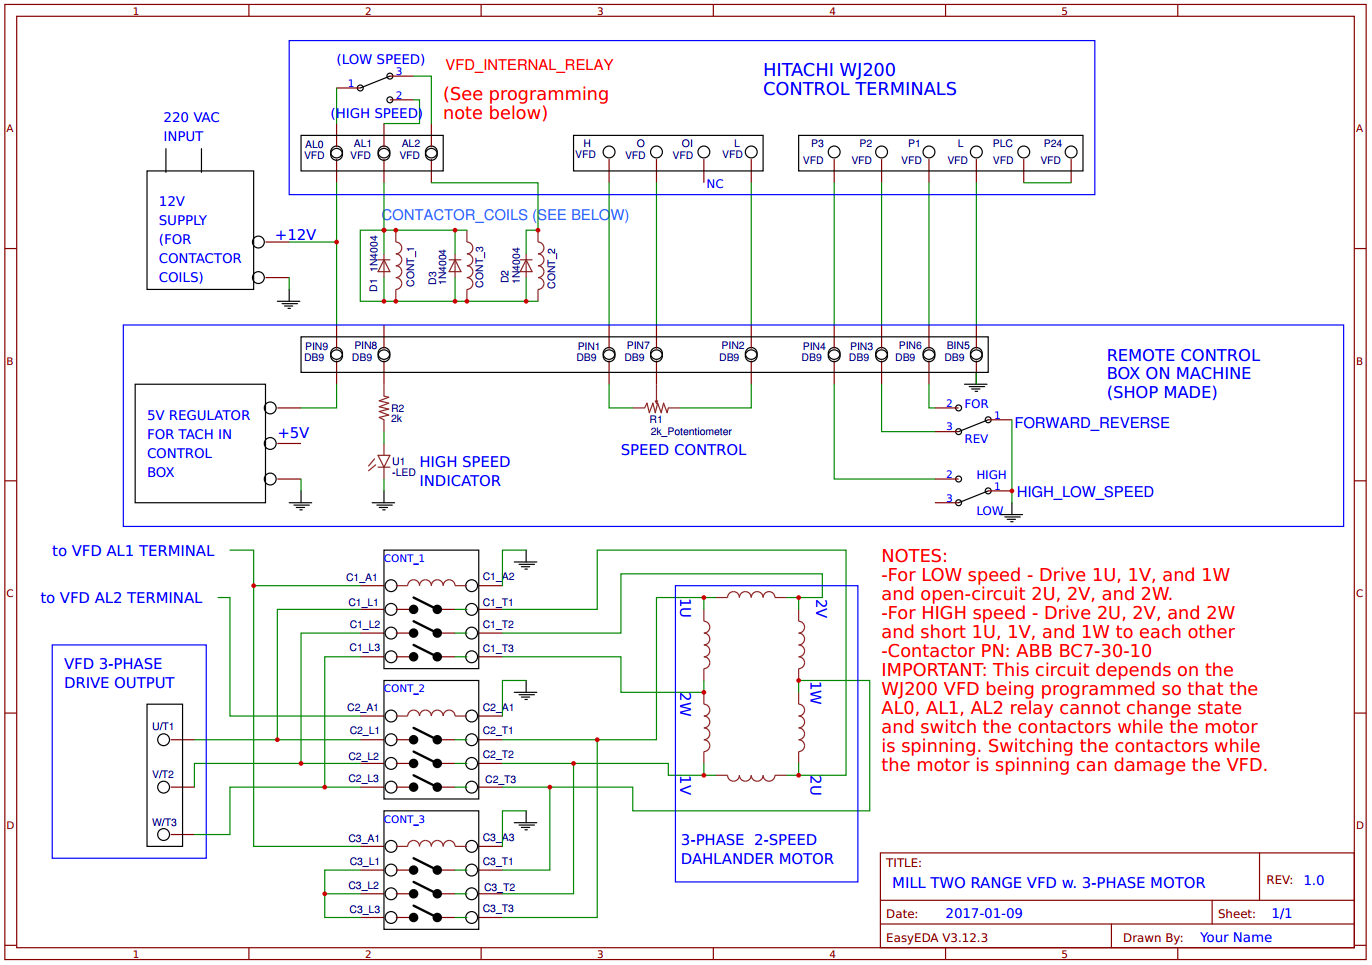 Enco Wiring Diagram Single Phase Electrical Below Are The Modifications For 2speed And Speed Adding A Vfd To An Odd Duck Milling Machine 100 1525 Motor Rh Lensprojects Wordpress